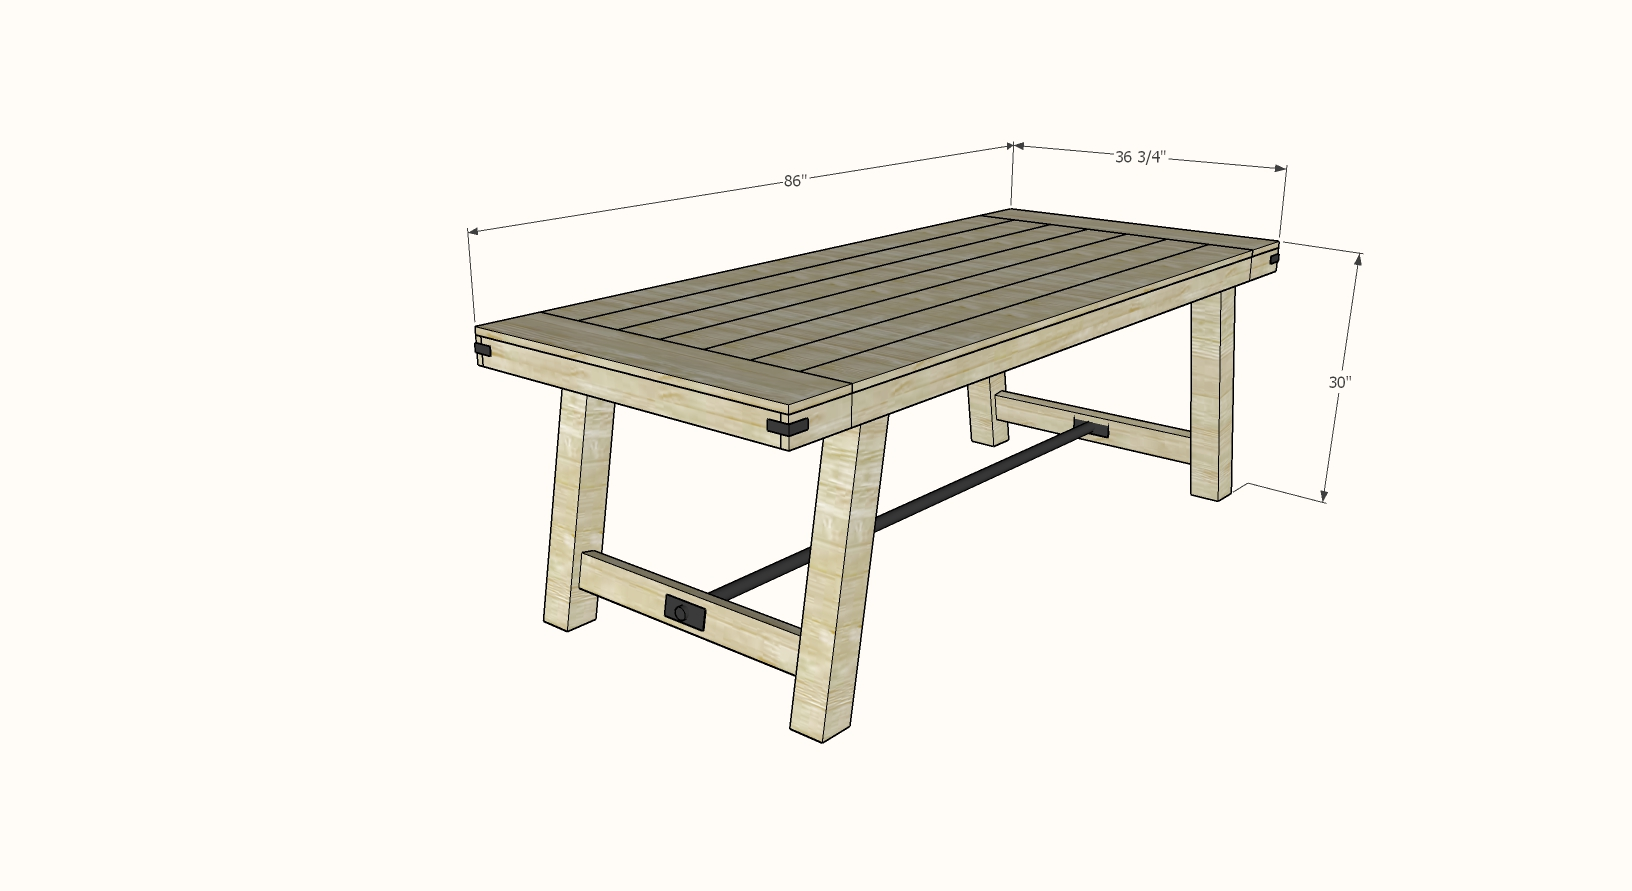 4x4 leg benchwright table